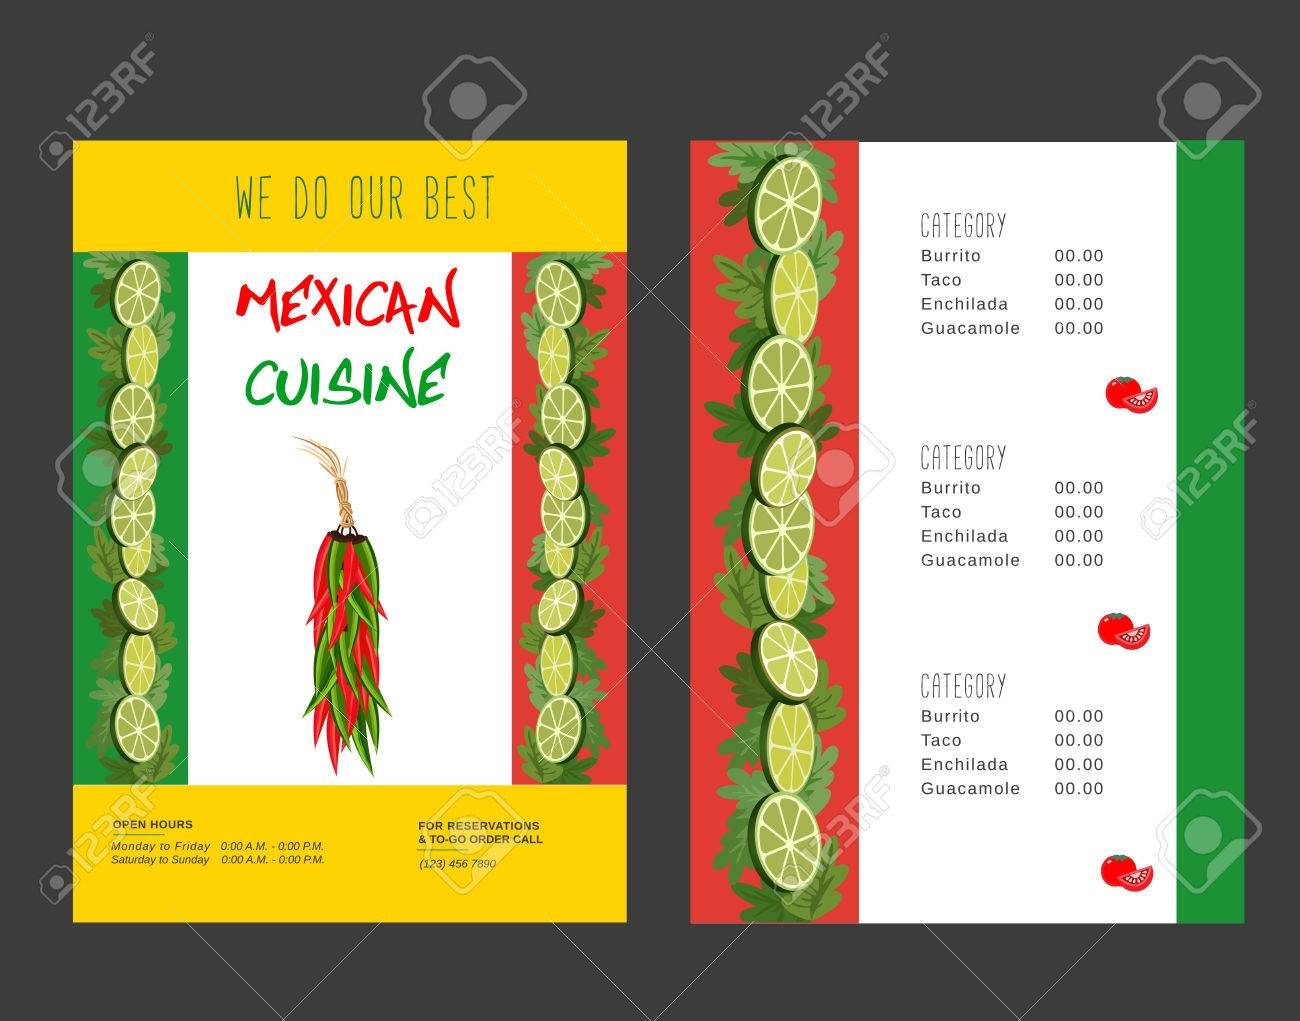 set of templates for restaurant mexican food menu advertisement set of templates for restaurant mexican food menu advertisement flyers hot chili pepper